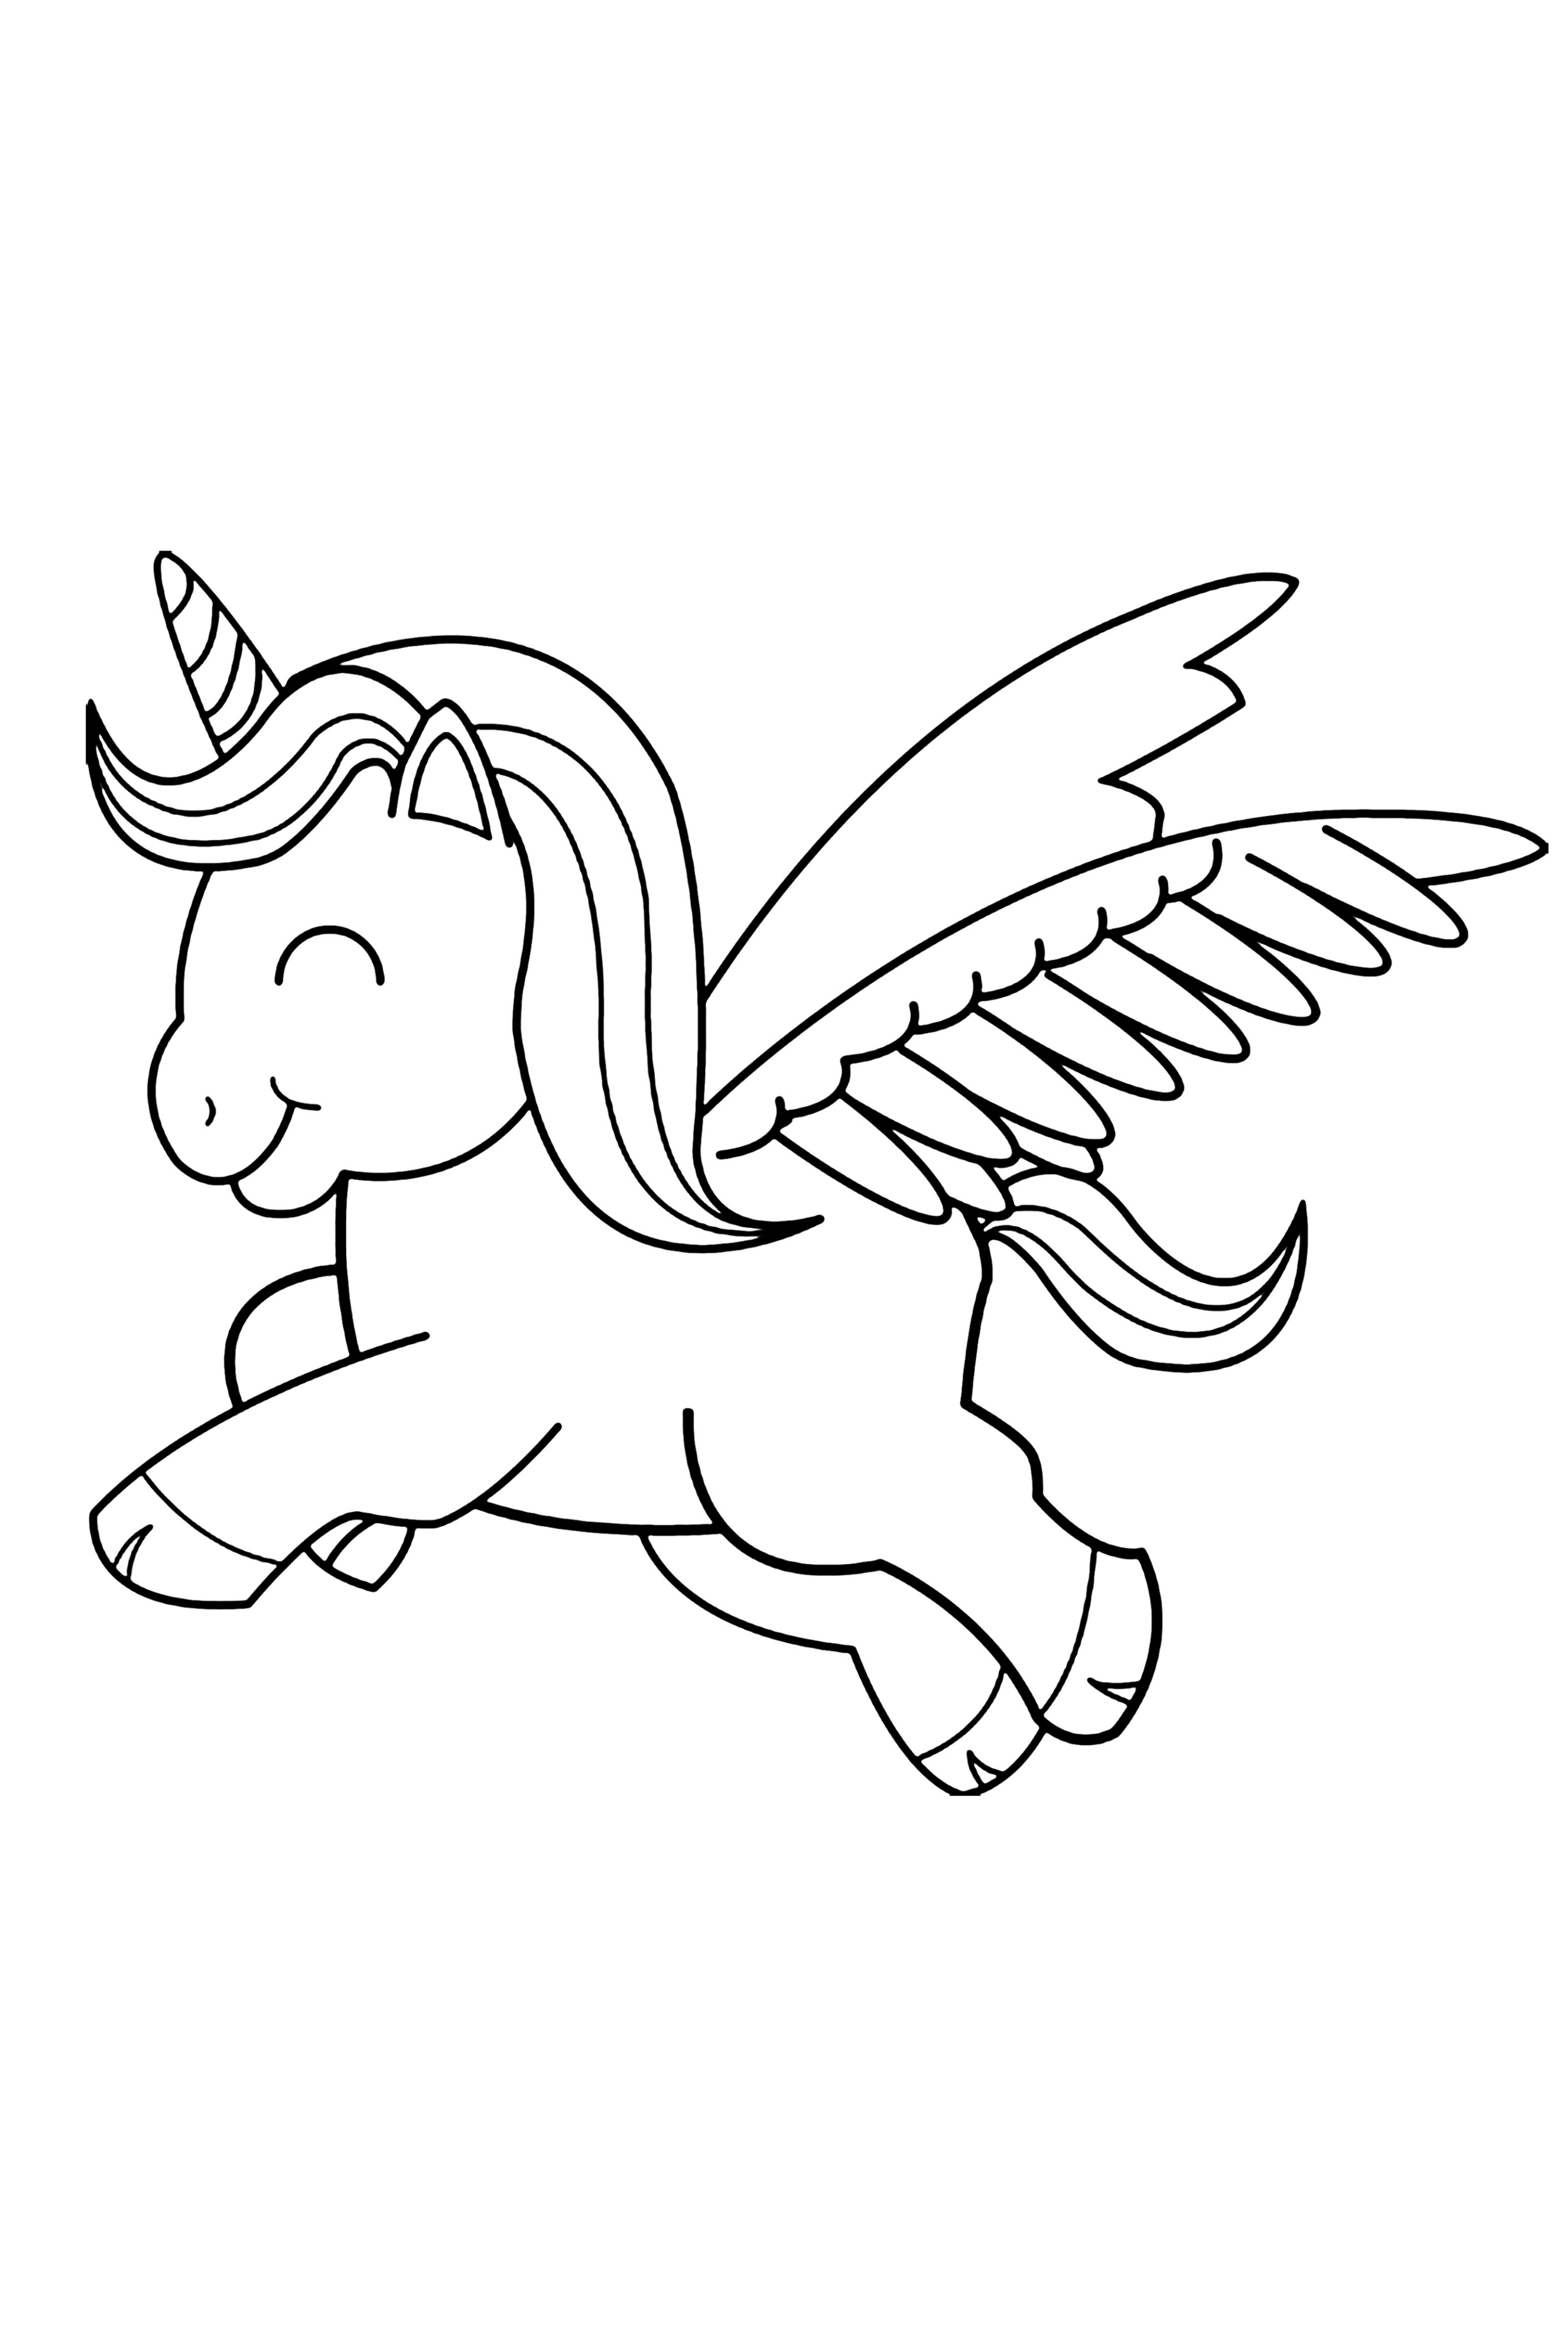 100 Unicorn Coloring Pages For Kids Unicorn Coloring Pages Coloring Pages Easy Coloring Pages